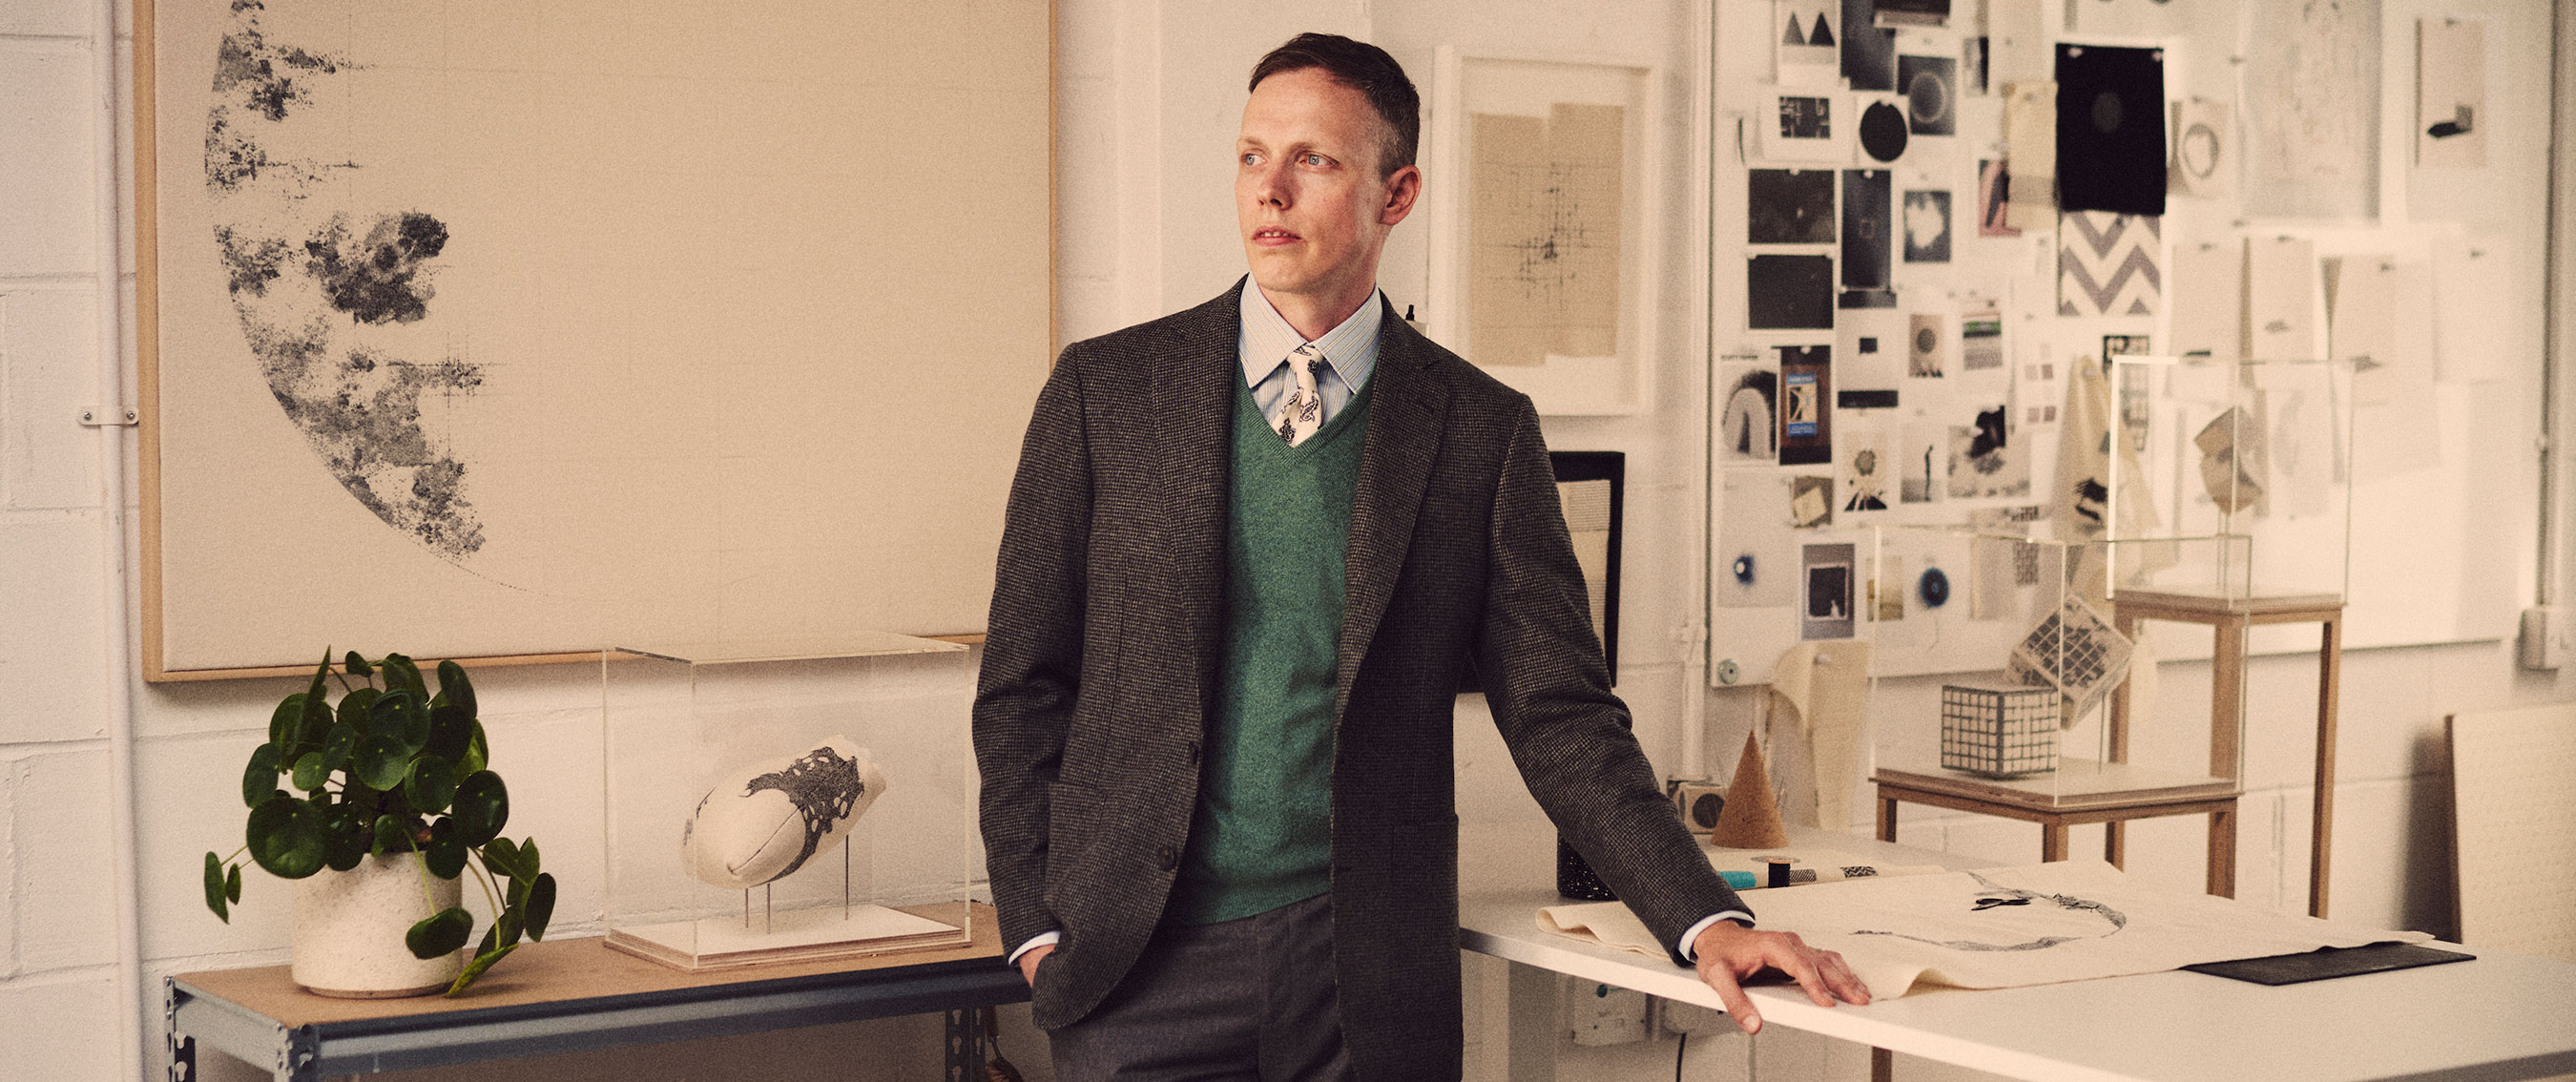 The Turnbull & Asser AW20 collection is all about creativity and connection